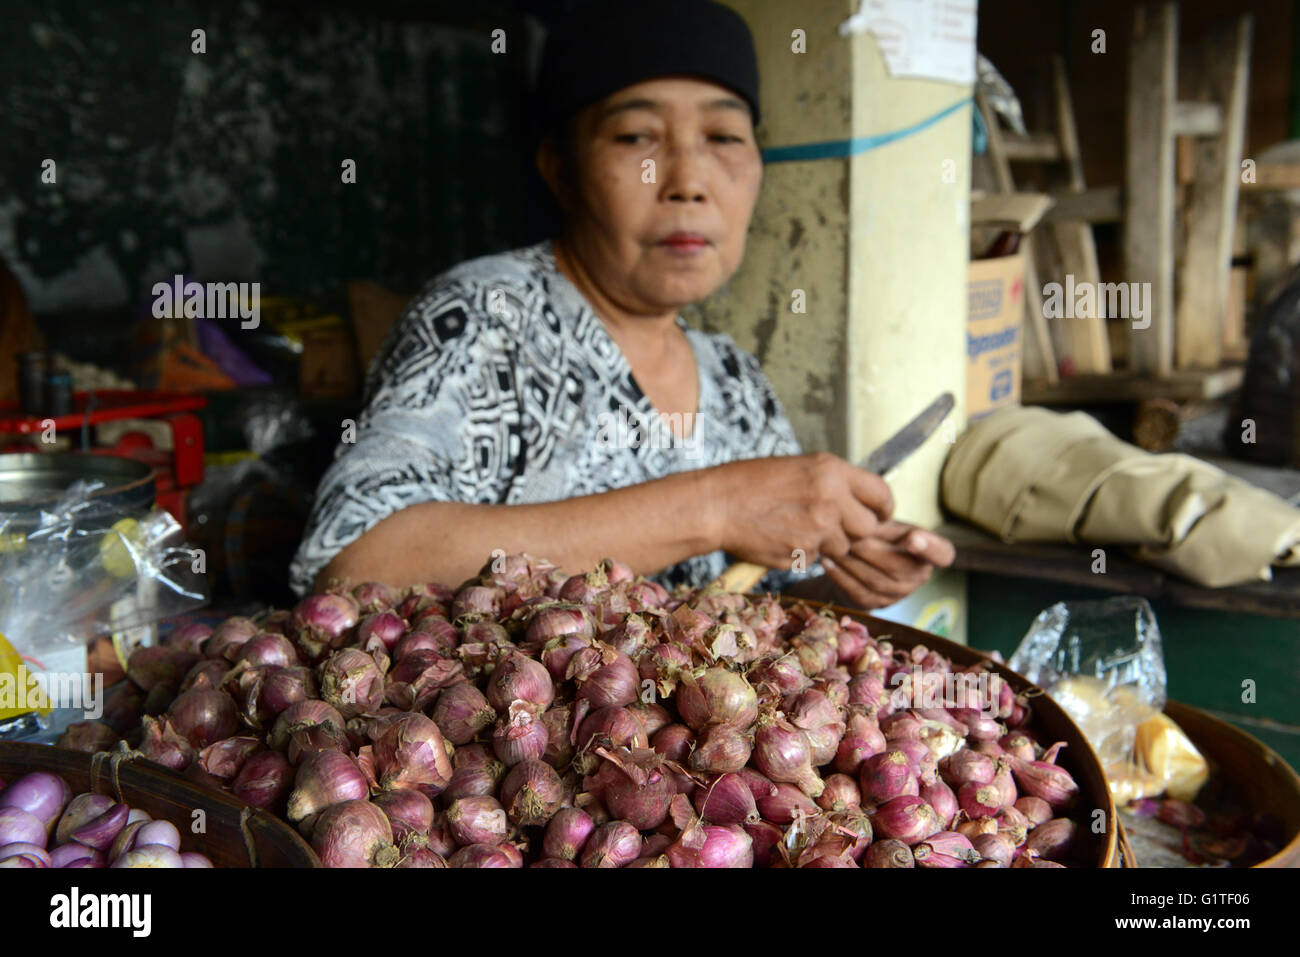 A Javanese woman peeling shallots in a market in Yogyakarta. - Stock Image